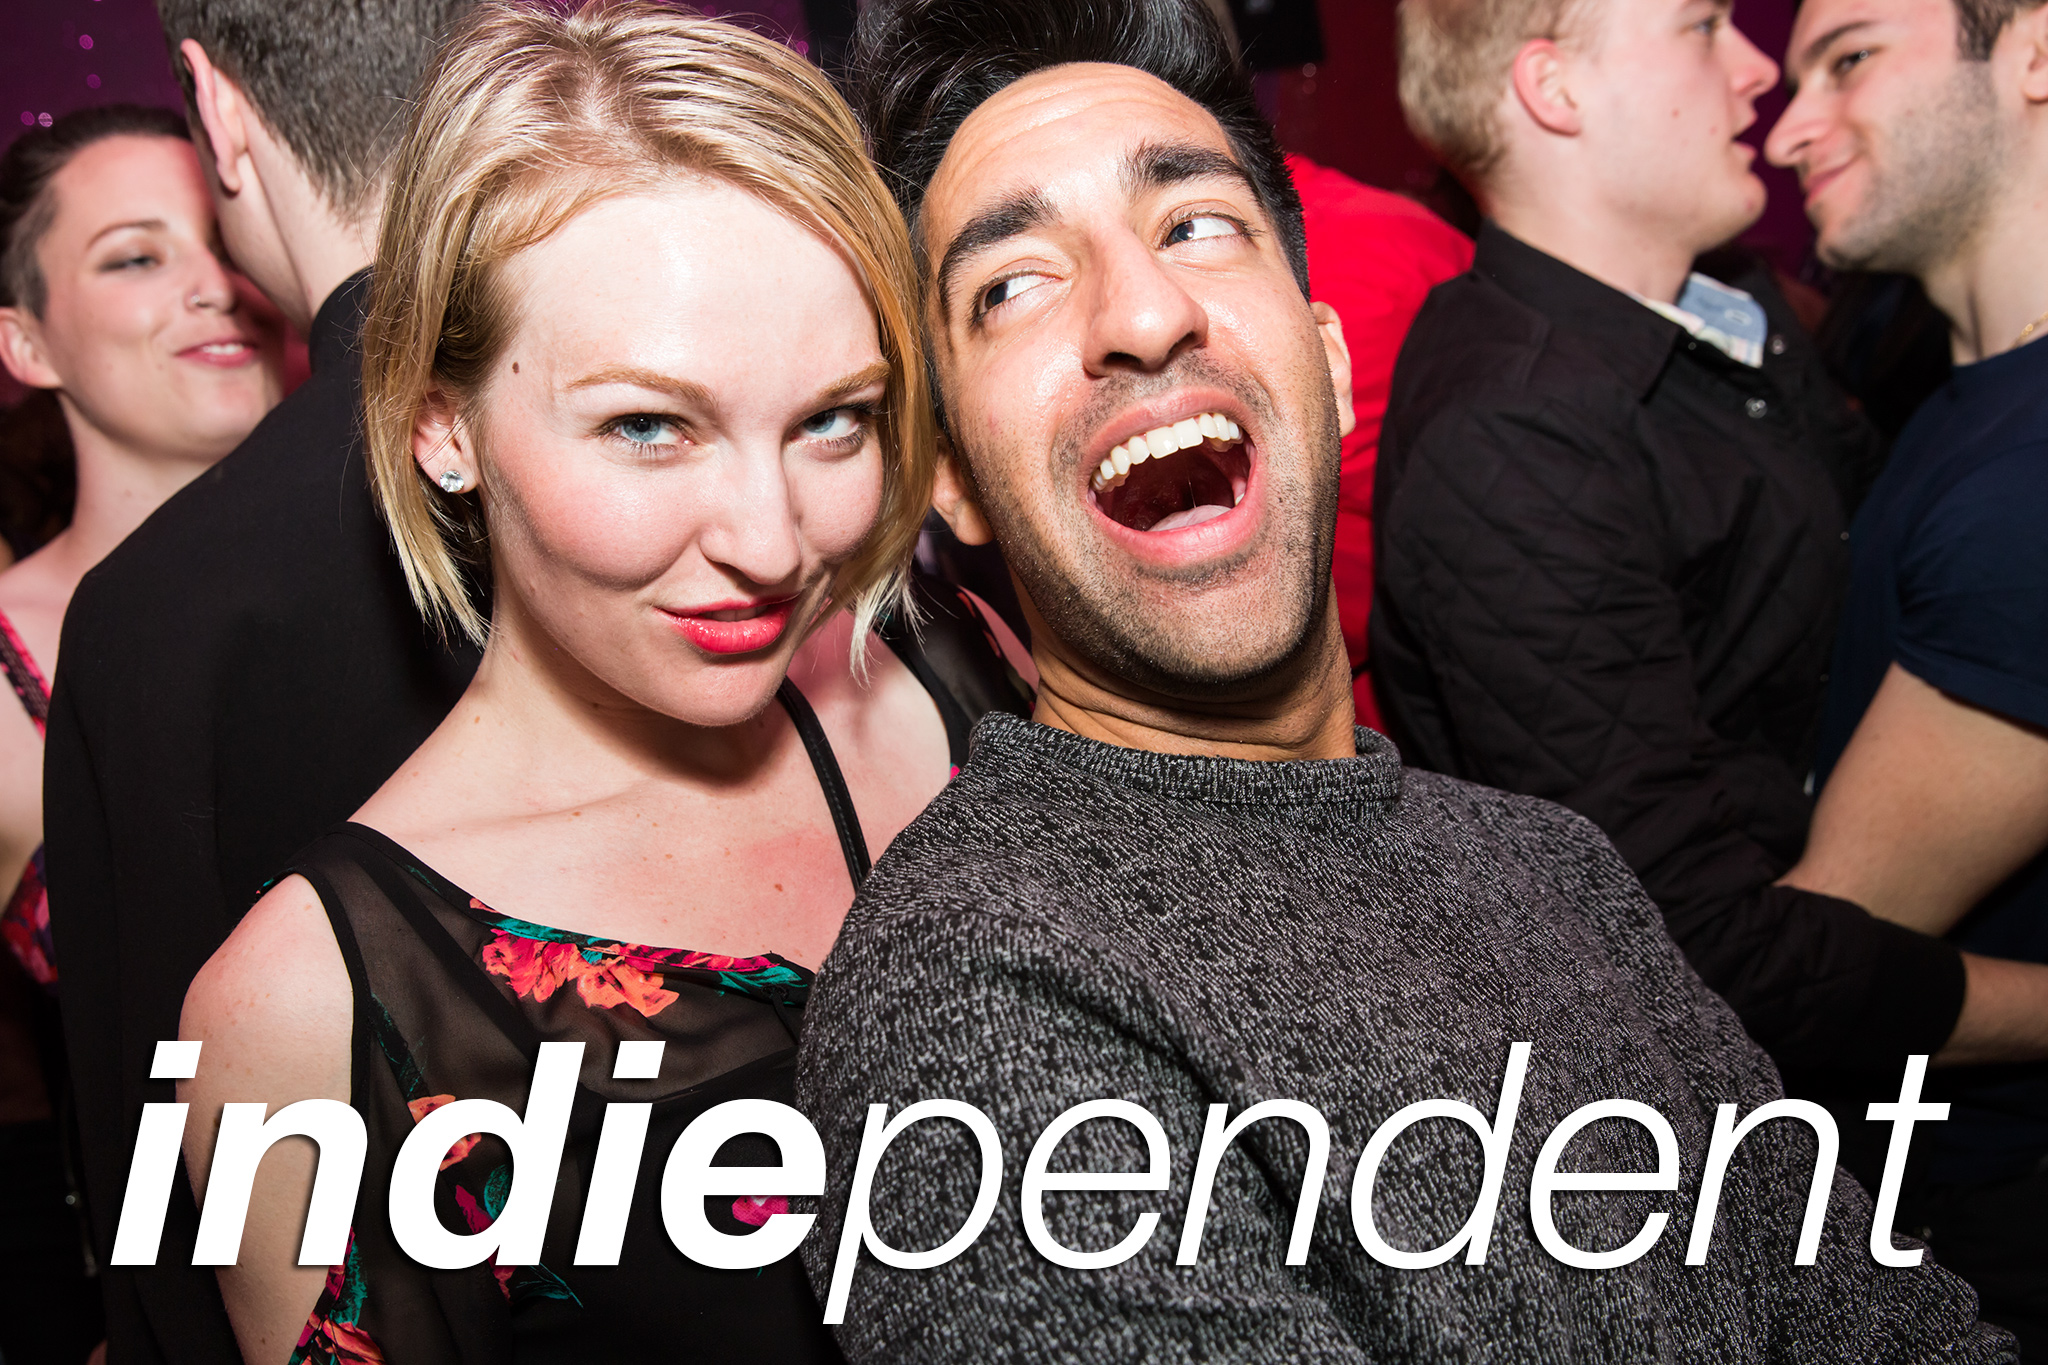 party pics from indie-pendent at beauty bar, may 2017